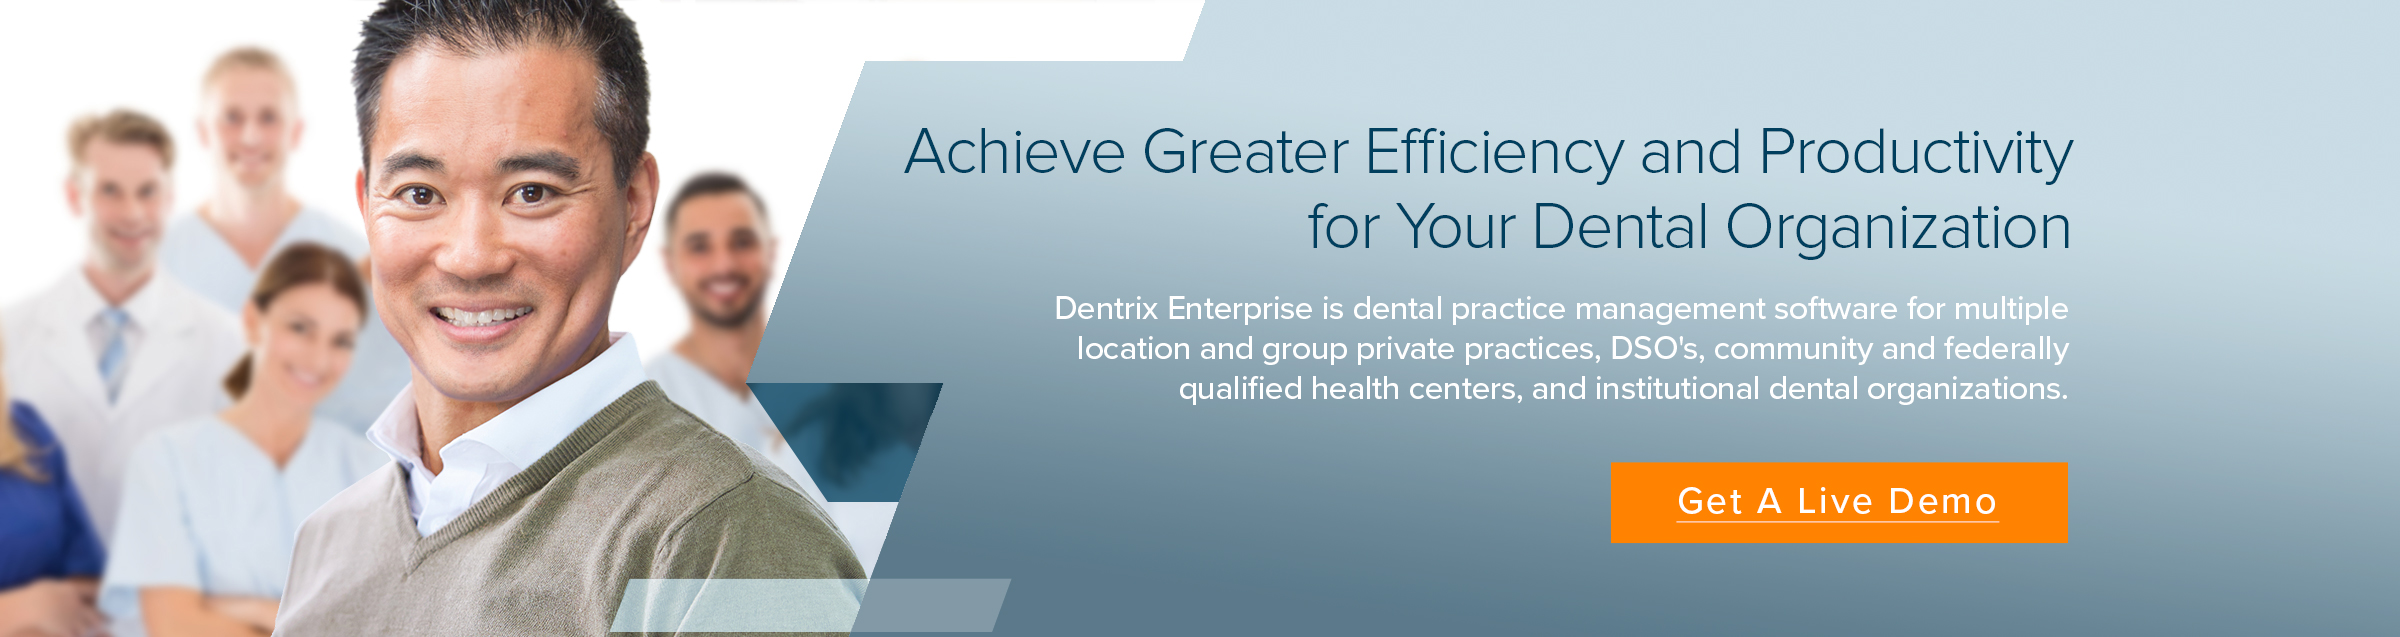 The Solution for Enterprise-Level Dental Organizations - Dentrix Enterprise is dental practice management software for multiple location and group private practices, DSOs, community and federally qualified health centers, and institutional dental organizations.